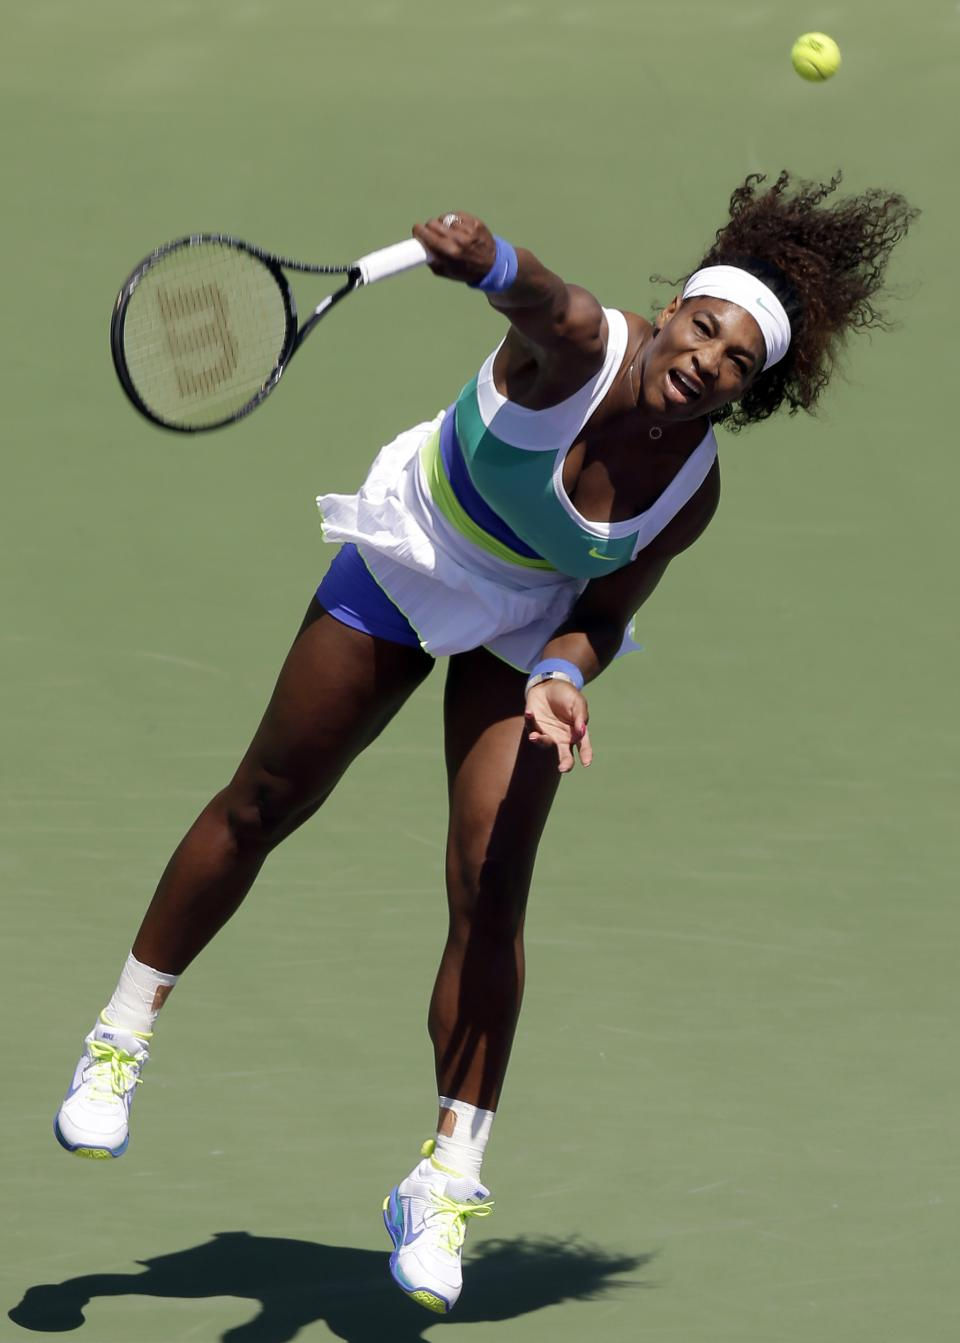 Serena Williams serves to Maria Sharapova, of Russia, during the final match of the Sony Open tennis tournament, Saturday, March 30, 2013, in Key Biscayne, Fla. (AP Photo/Wilfredo Lee)